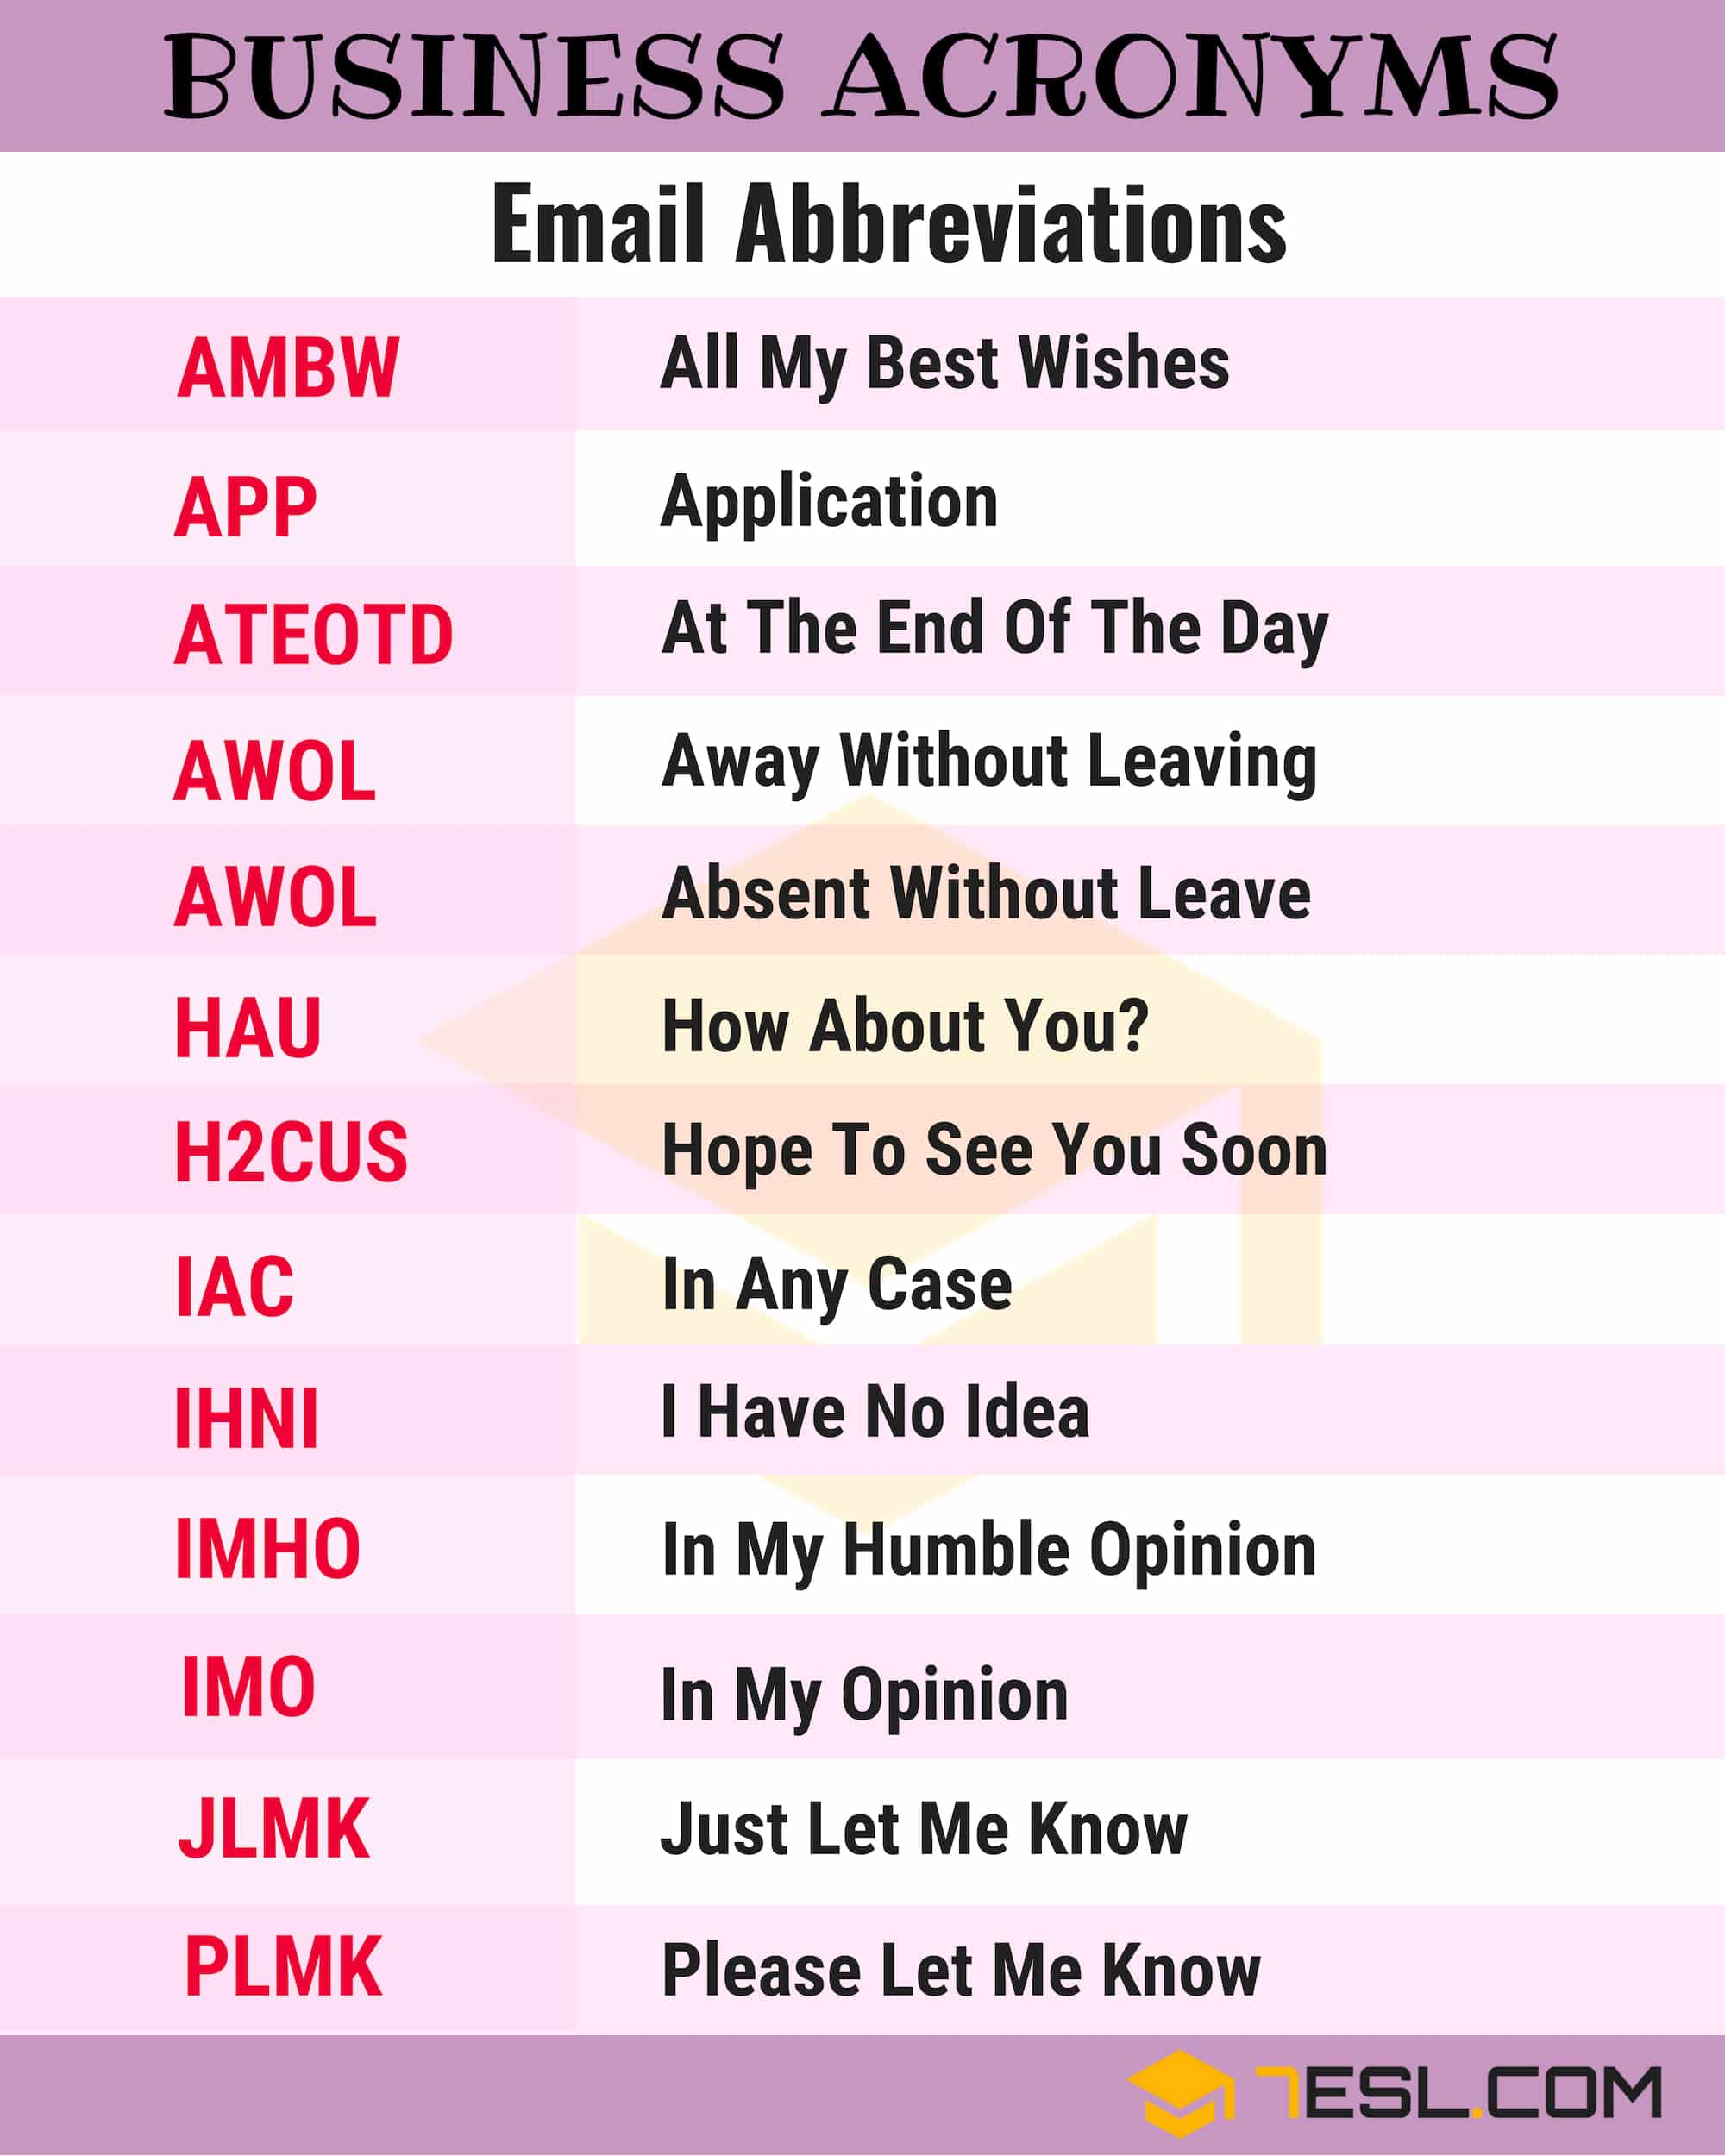 250+ Common Business Acronyms, Abbreviations and Slang Terms 8